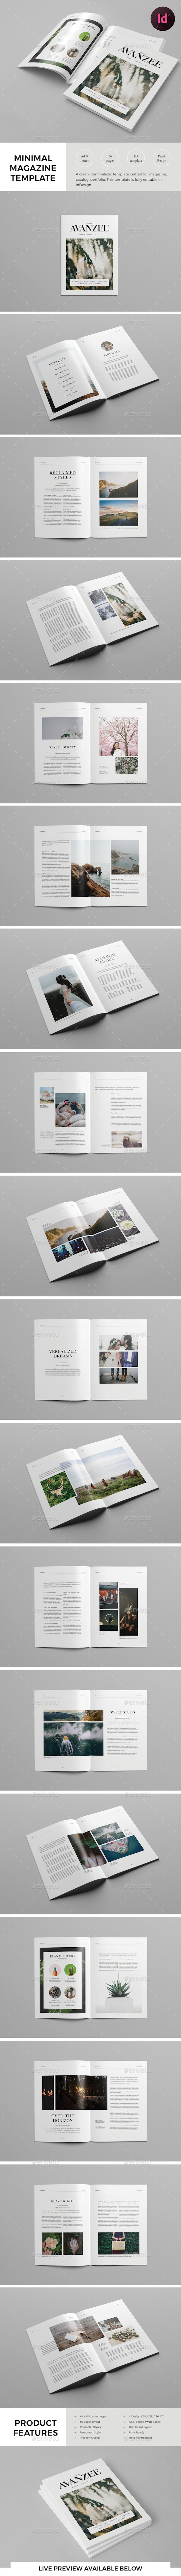 Minimal Magazine Template by tontuz | GraphicRiver